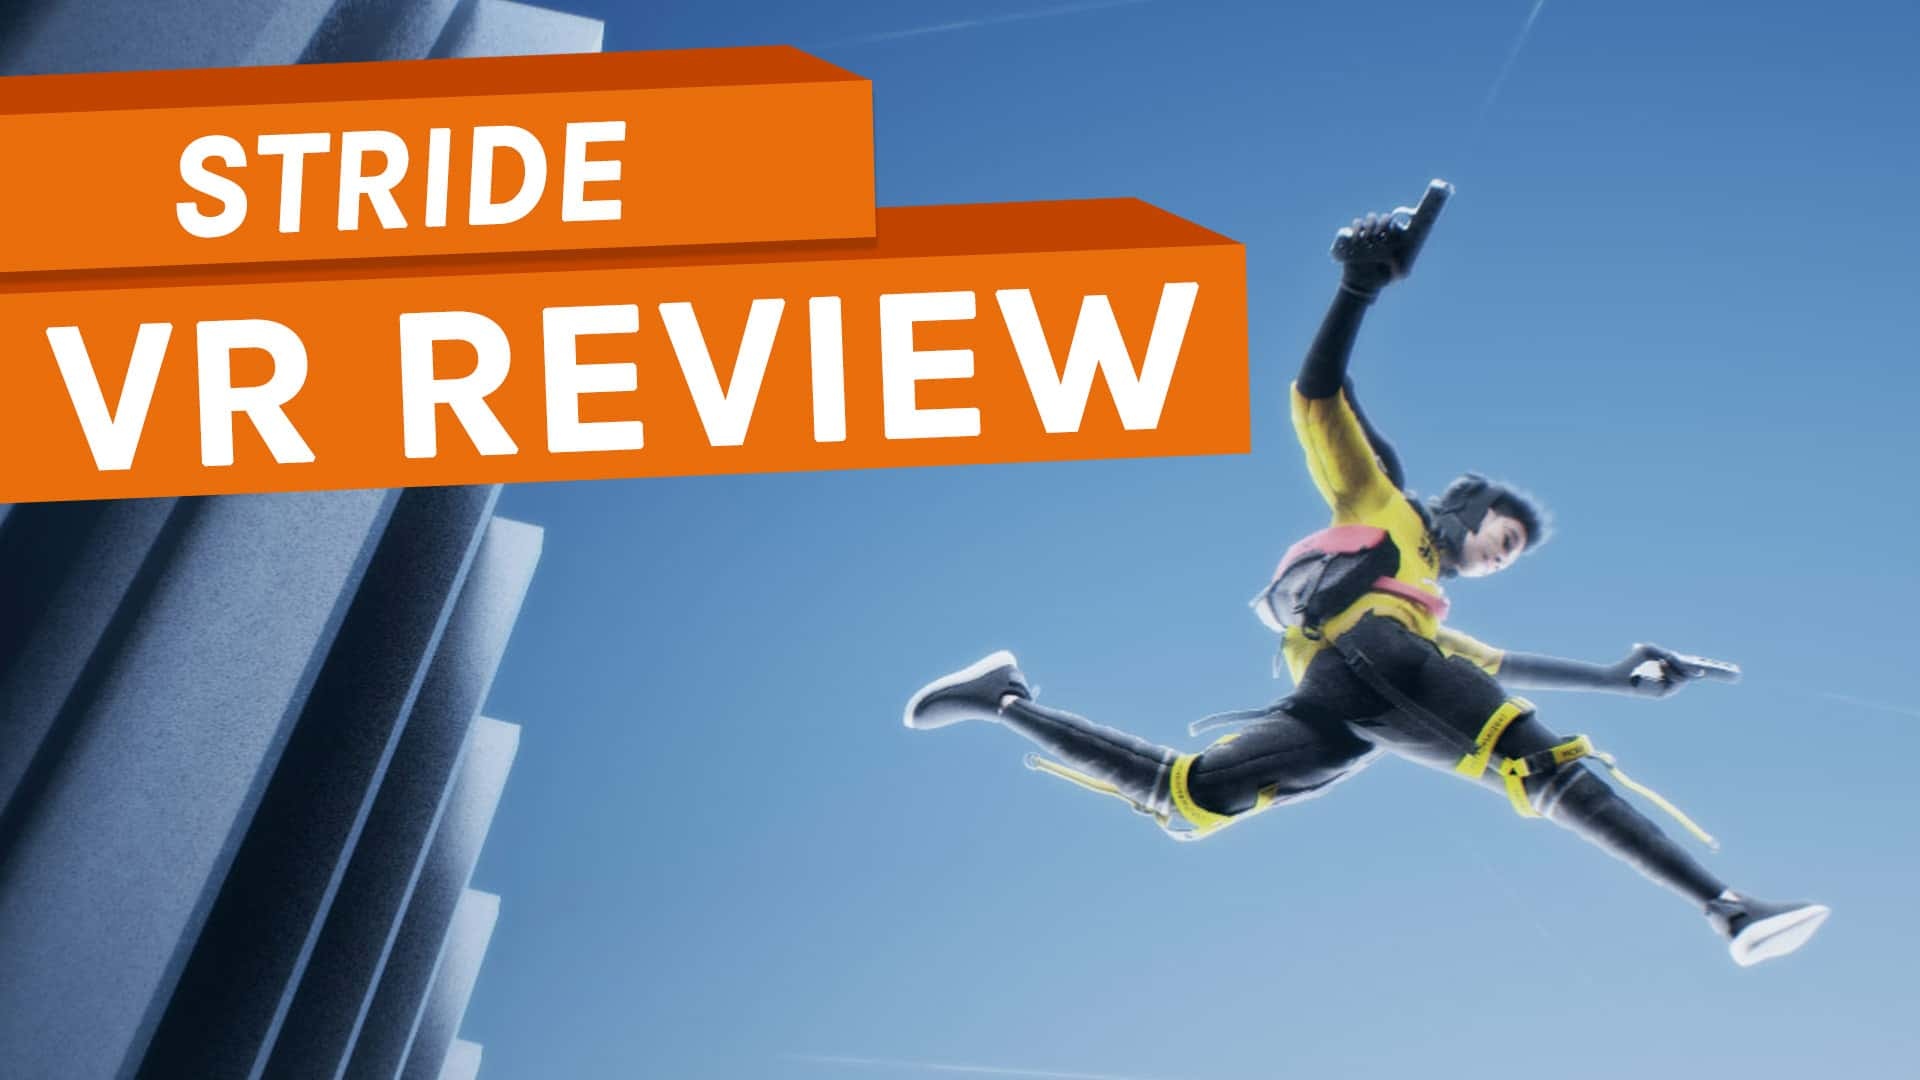 Stride Review